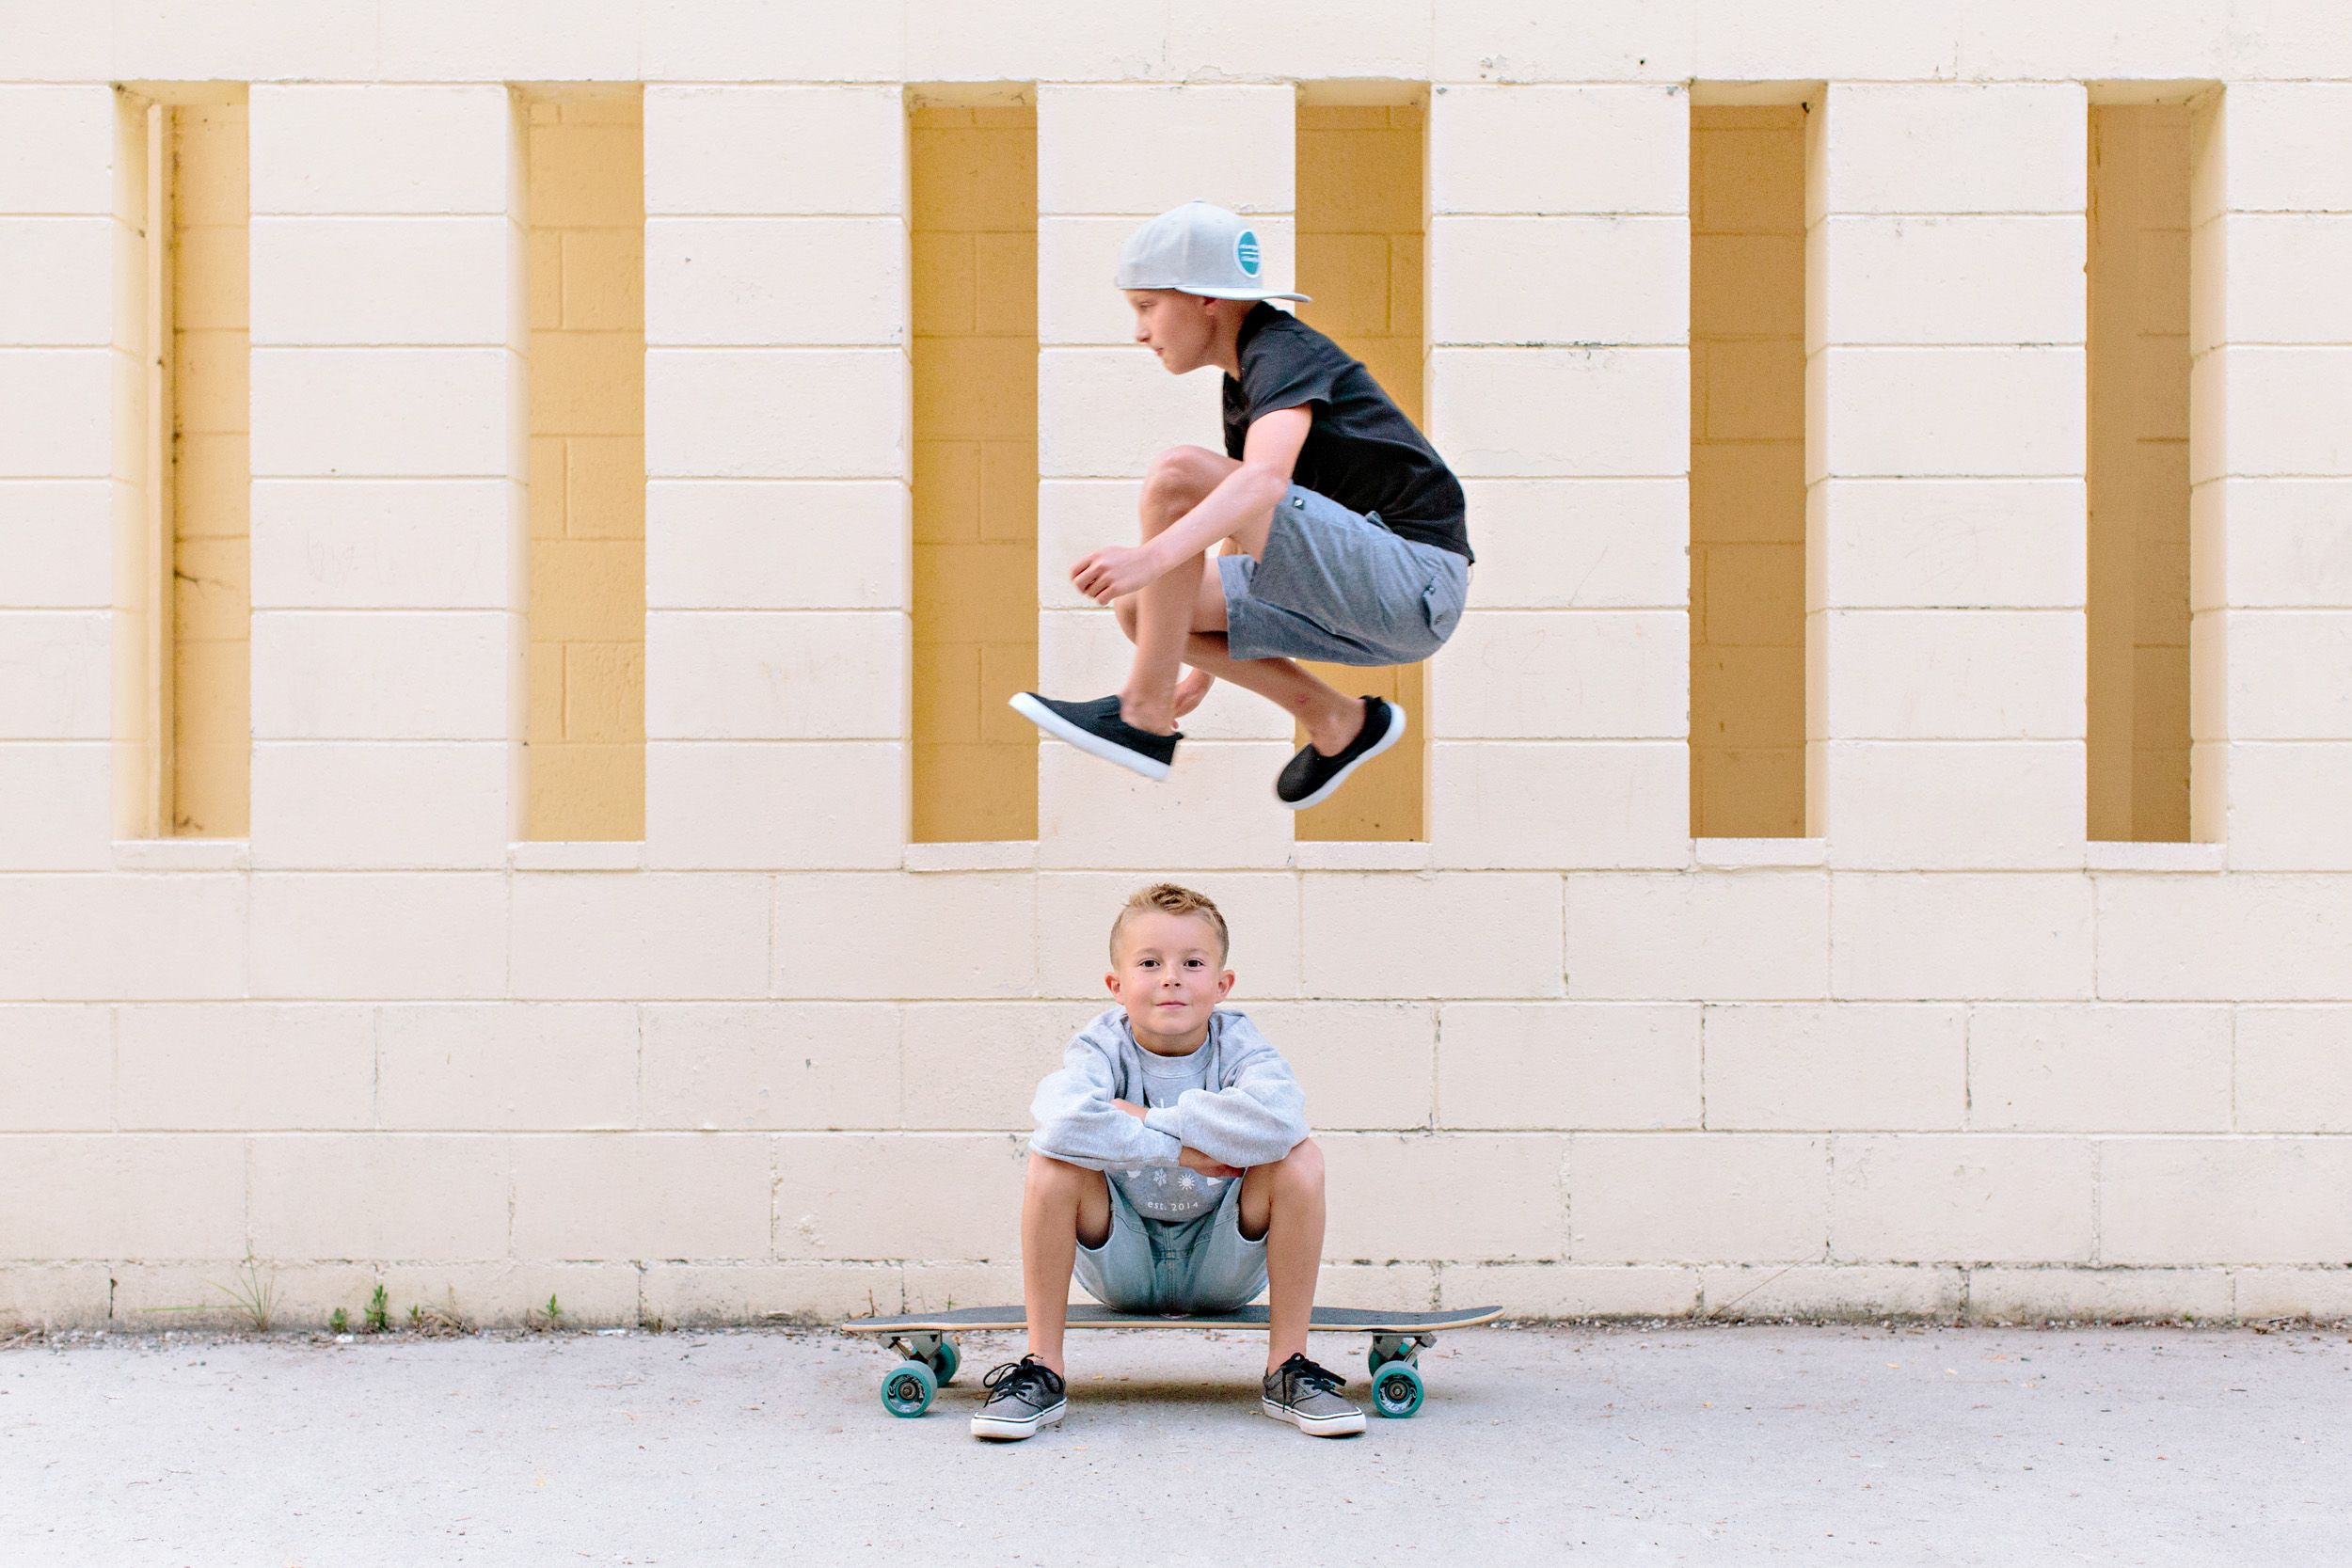 boy jumping over a boy on a skateboard